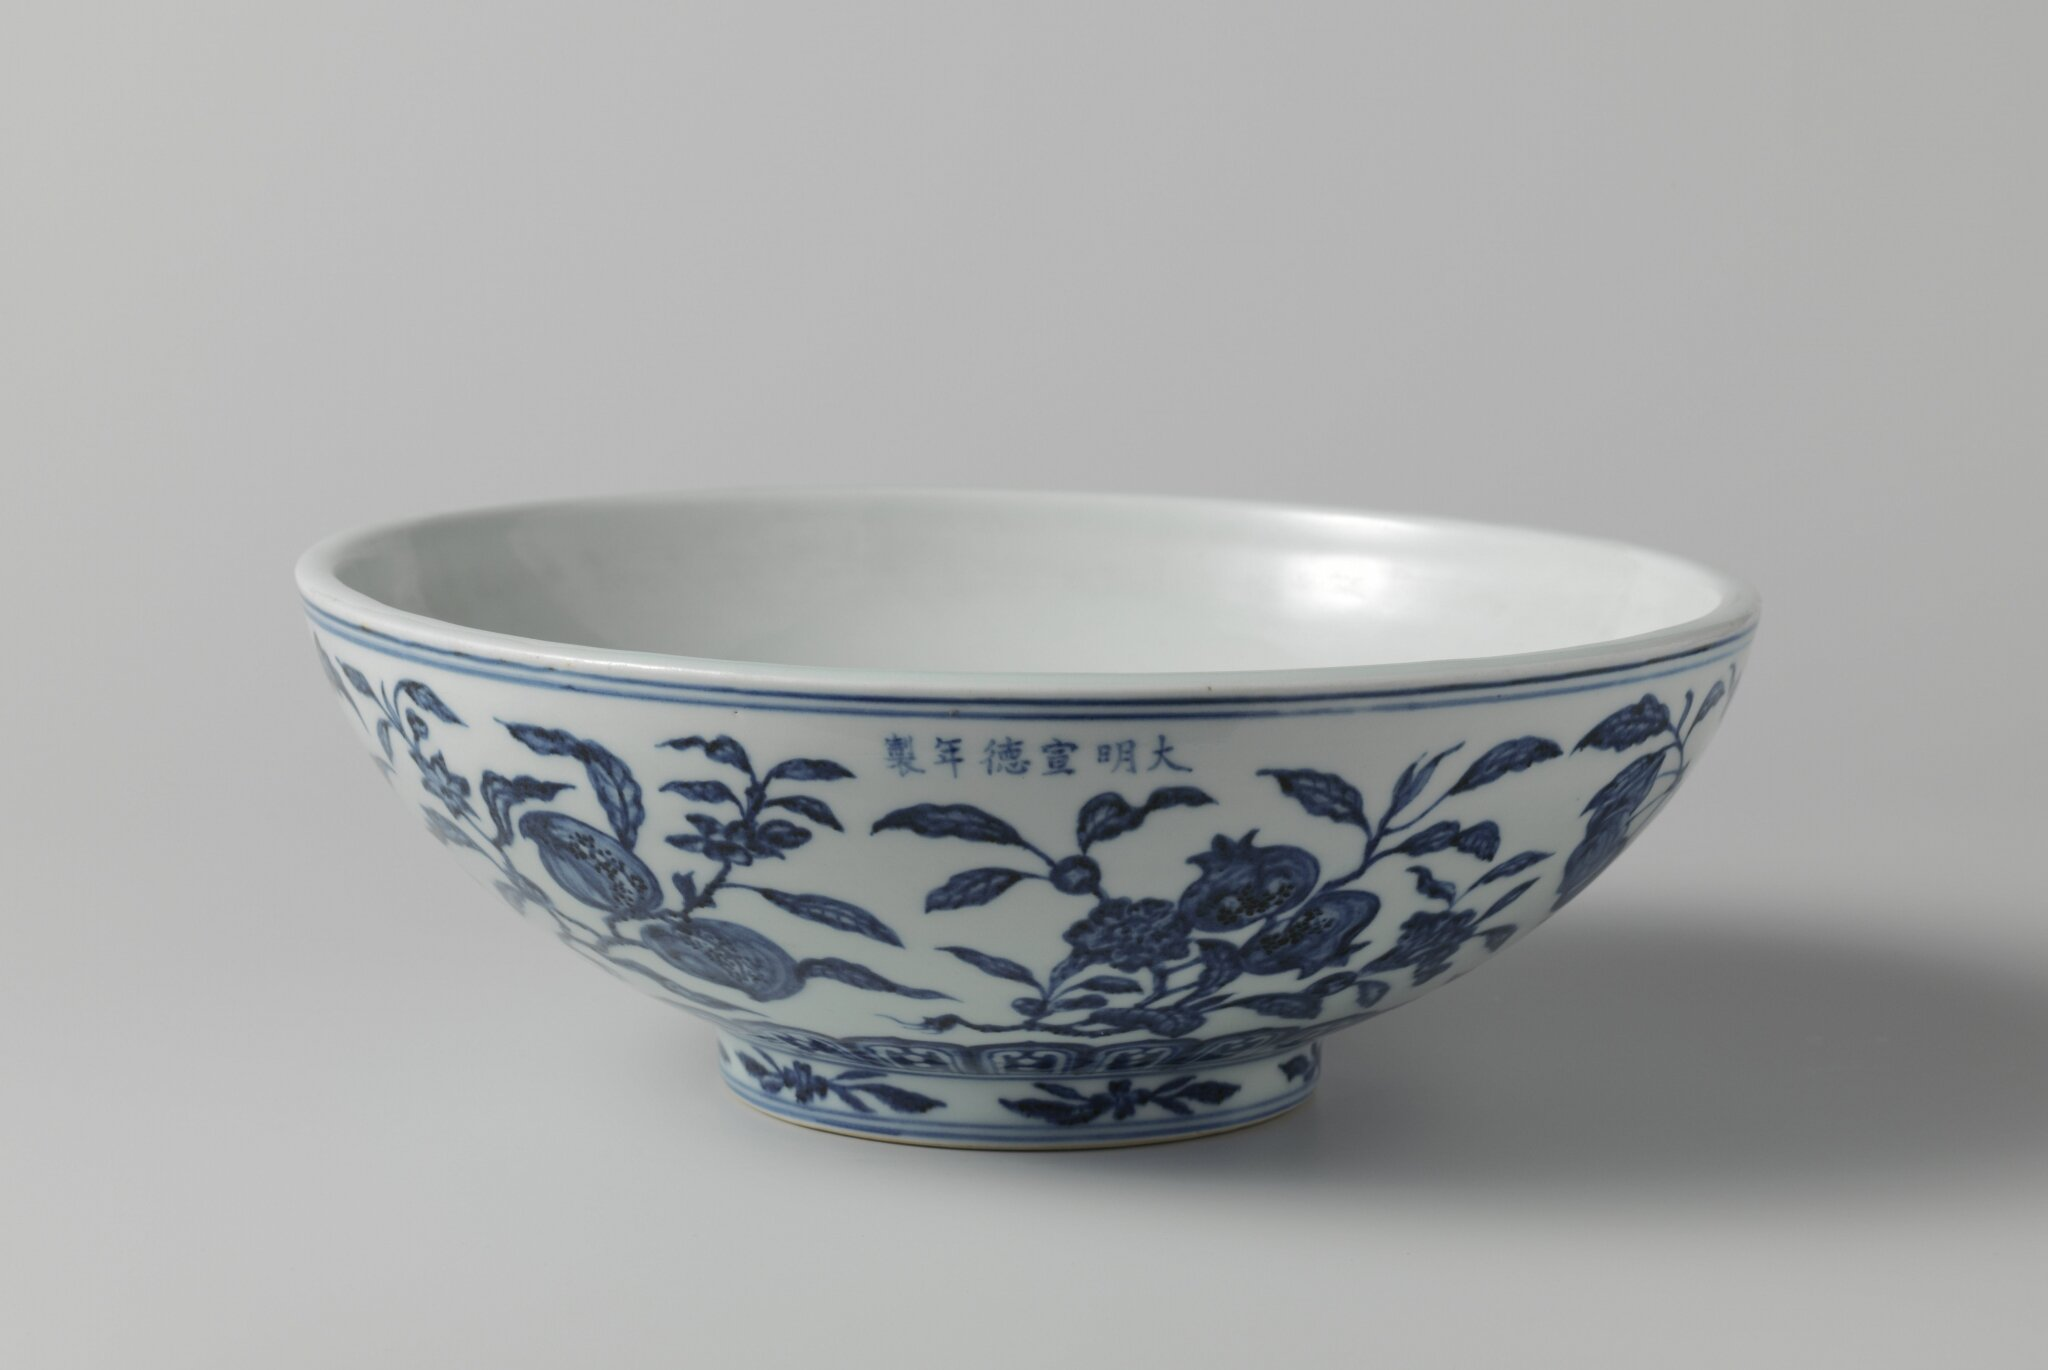 Bowl with sprays of fruit, Xuande mark and period